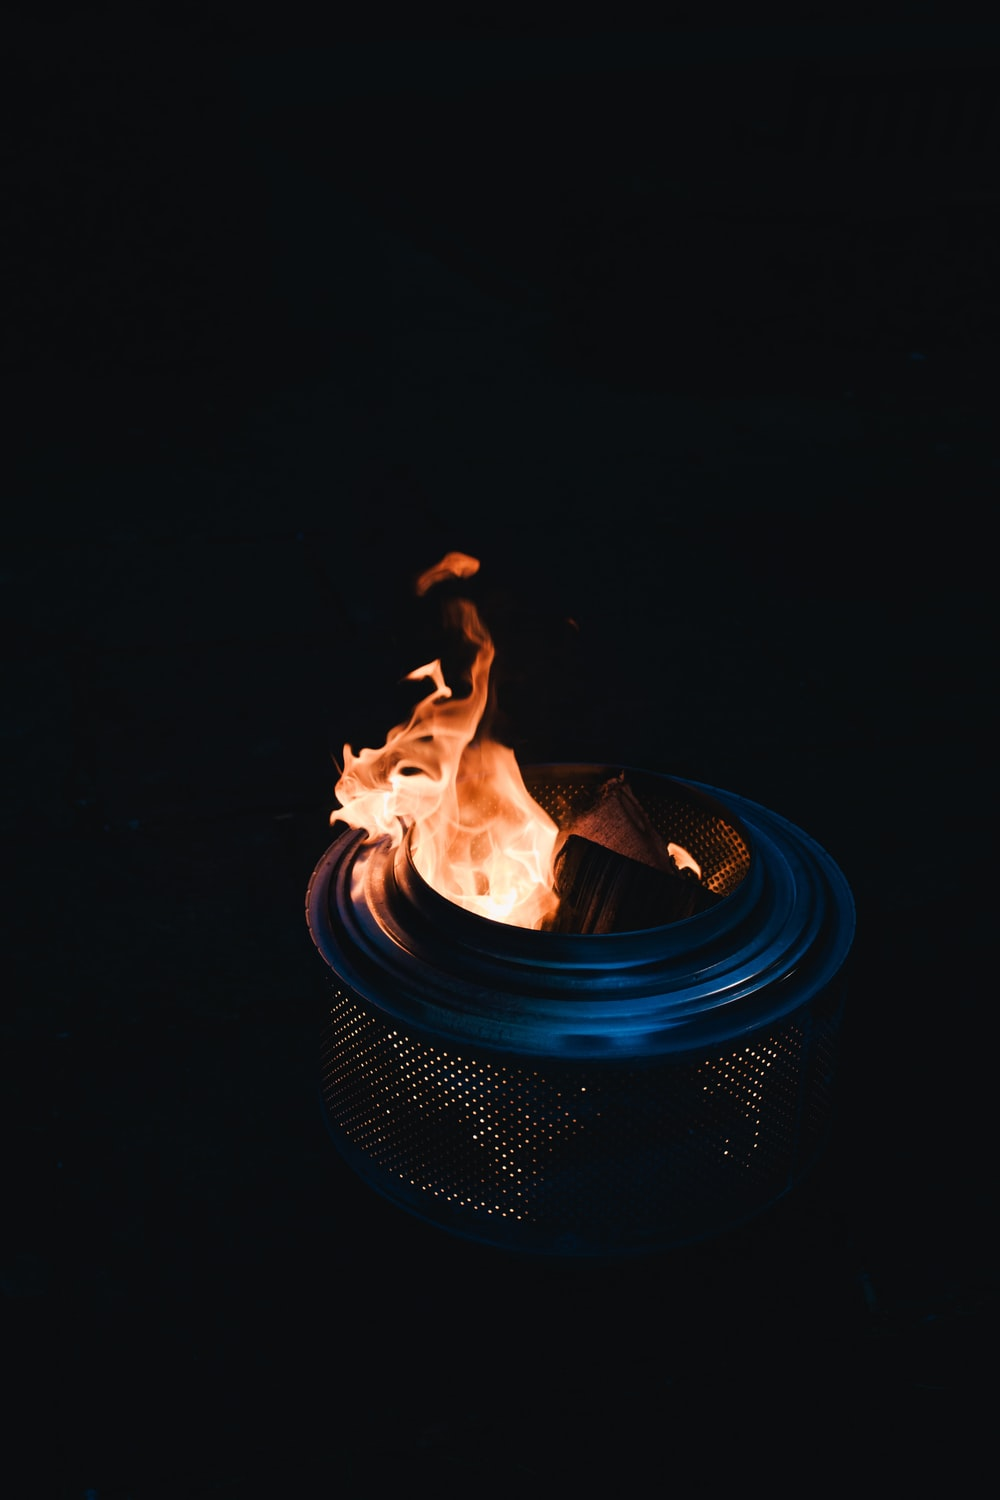 photo of burning charcoal